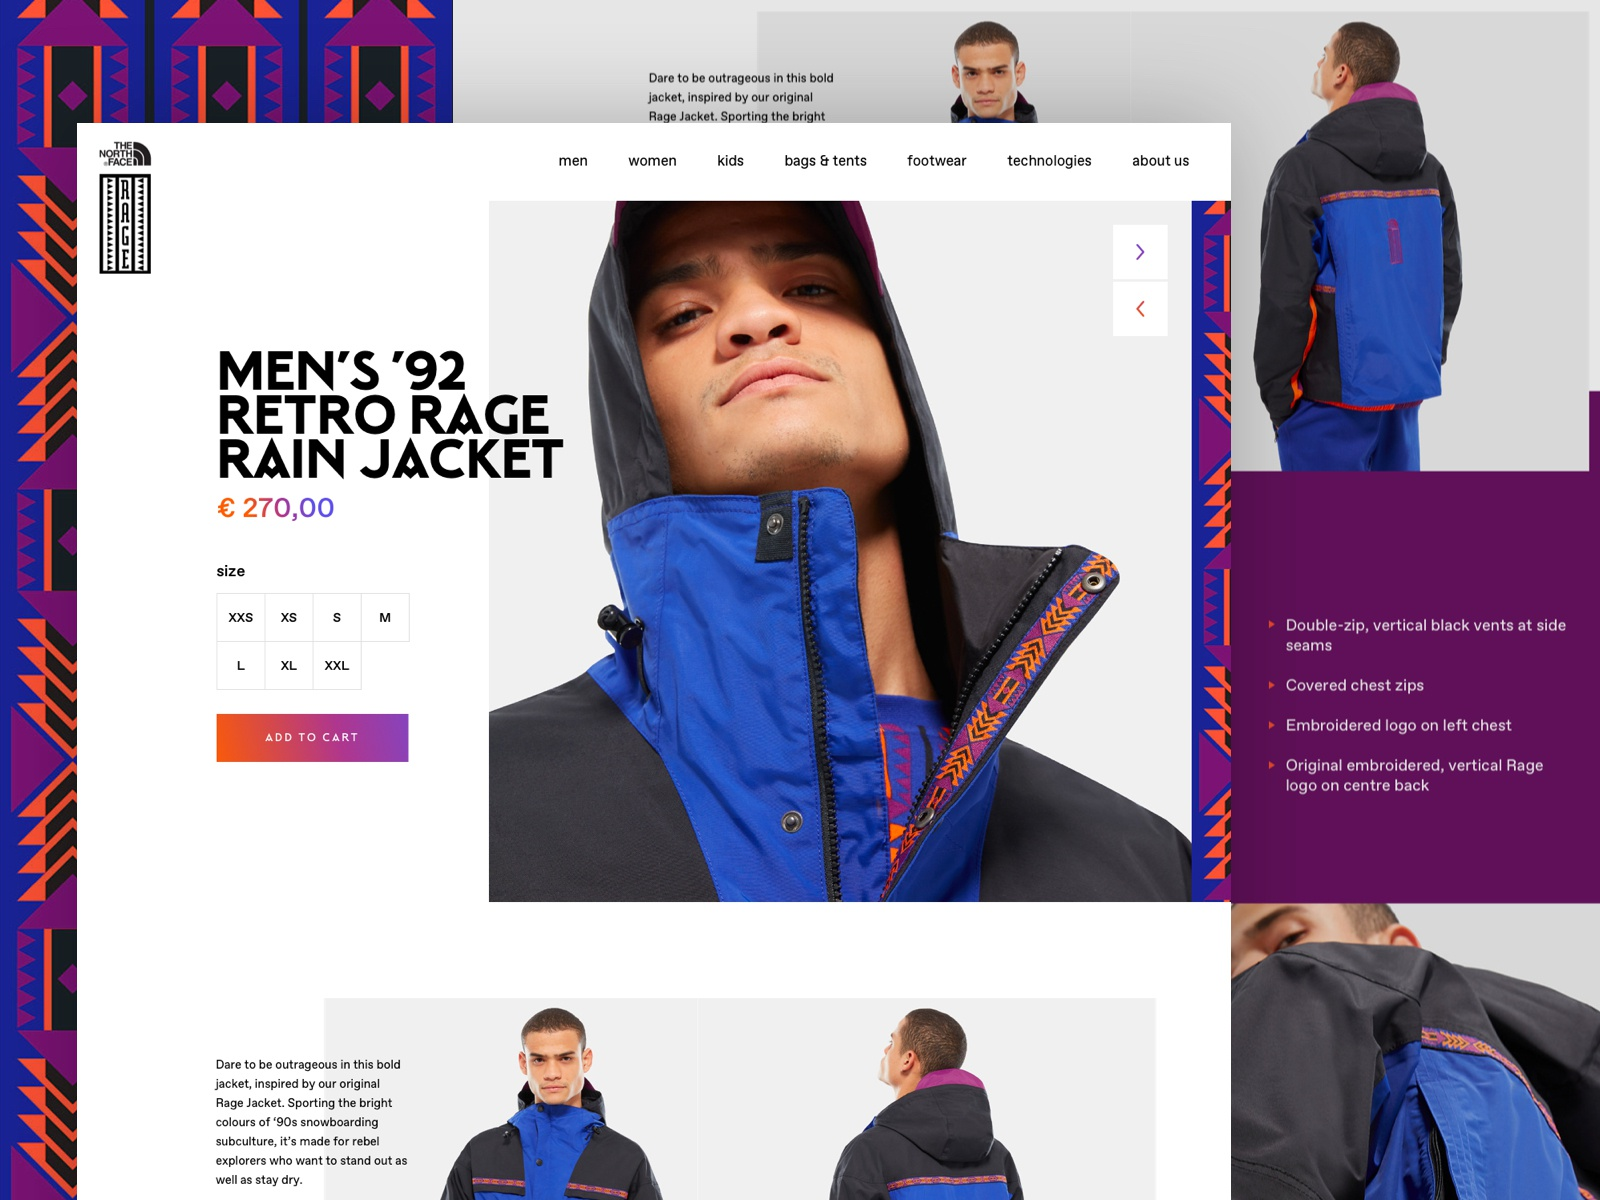 Tnf product page